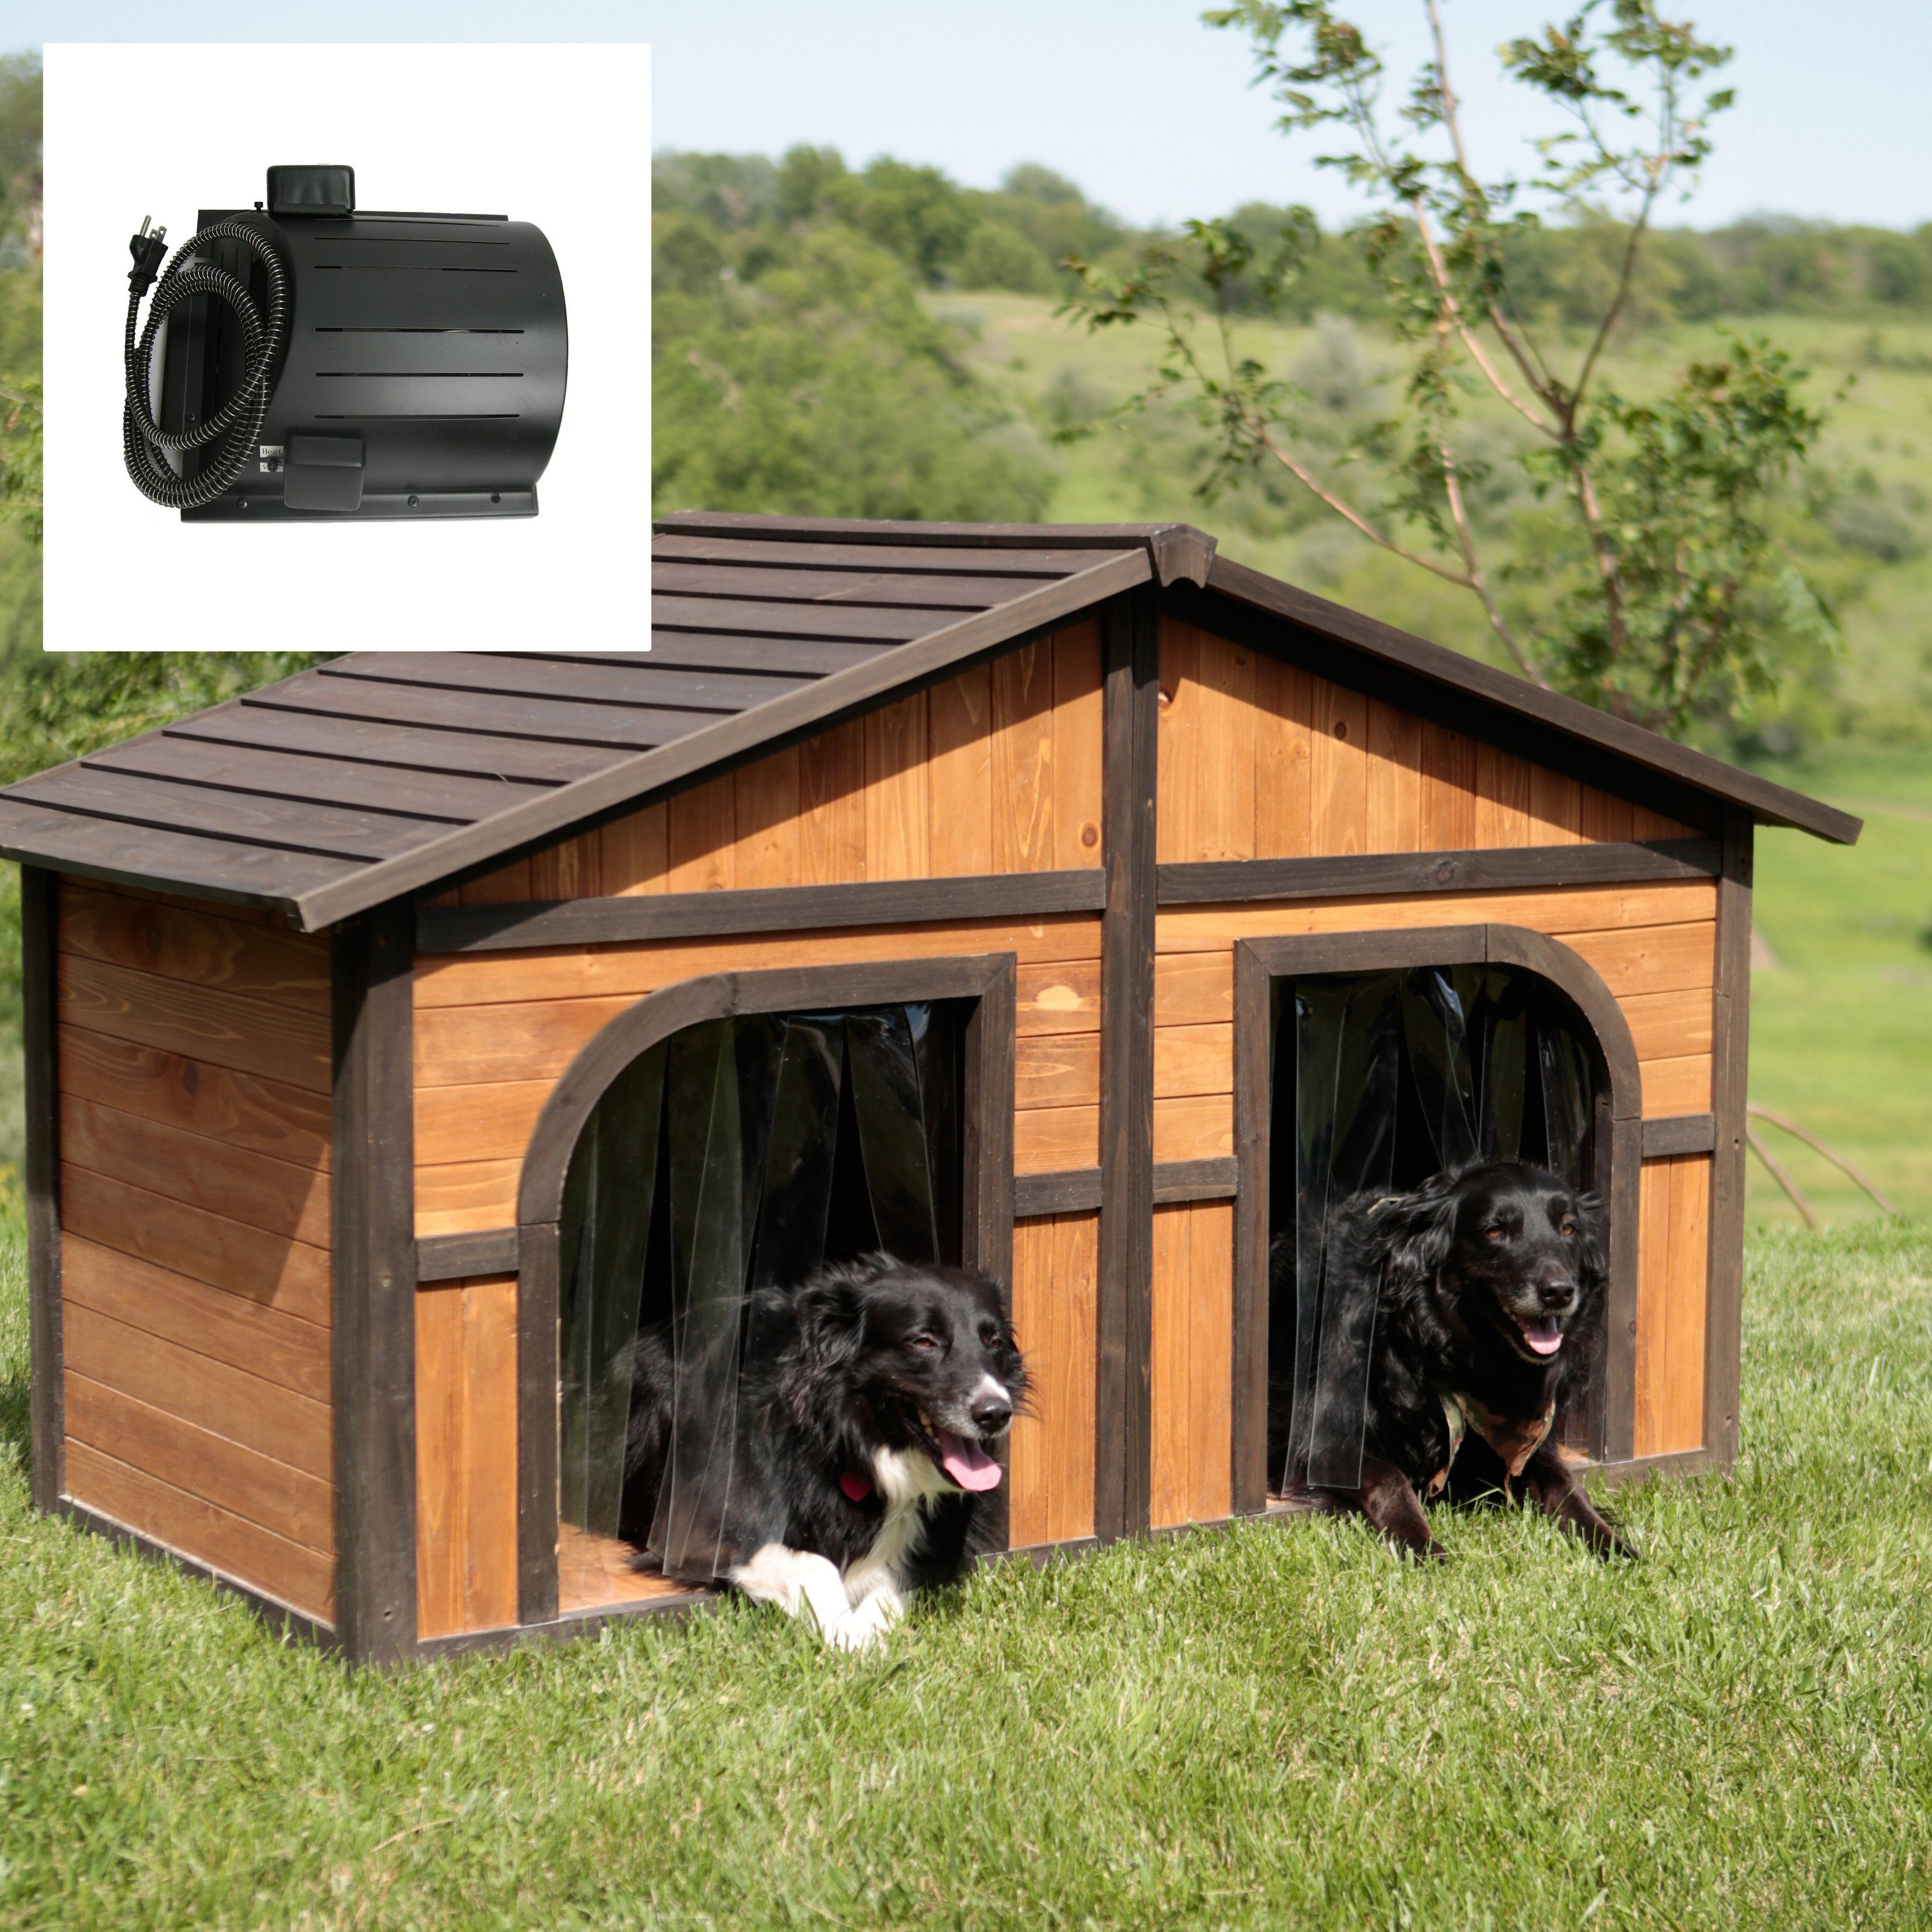 Merry Products Darker Stain Duplex Dog House With Heating